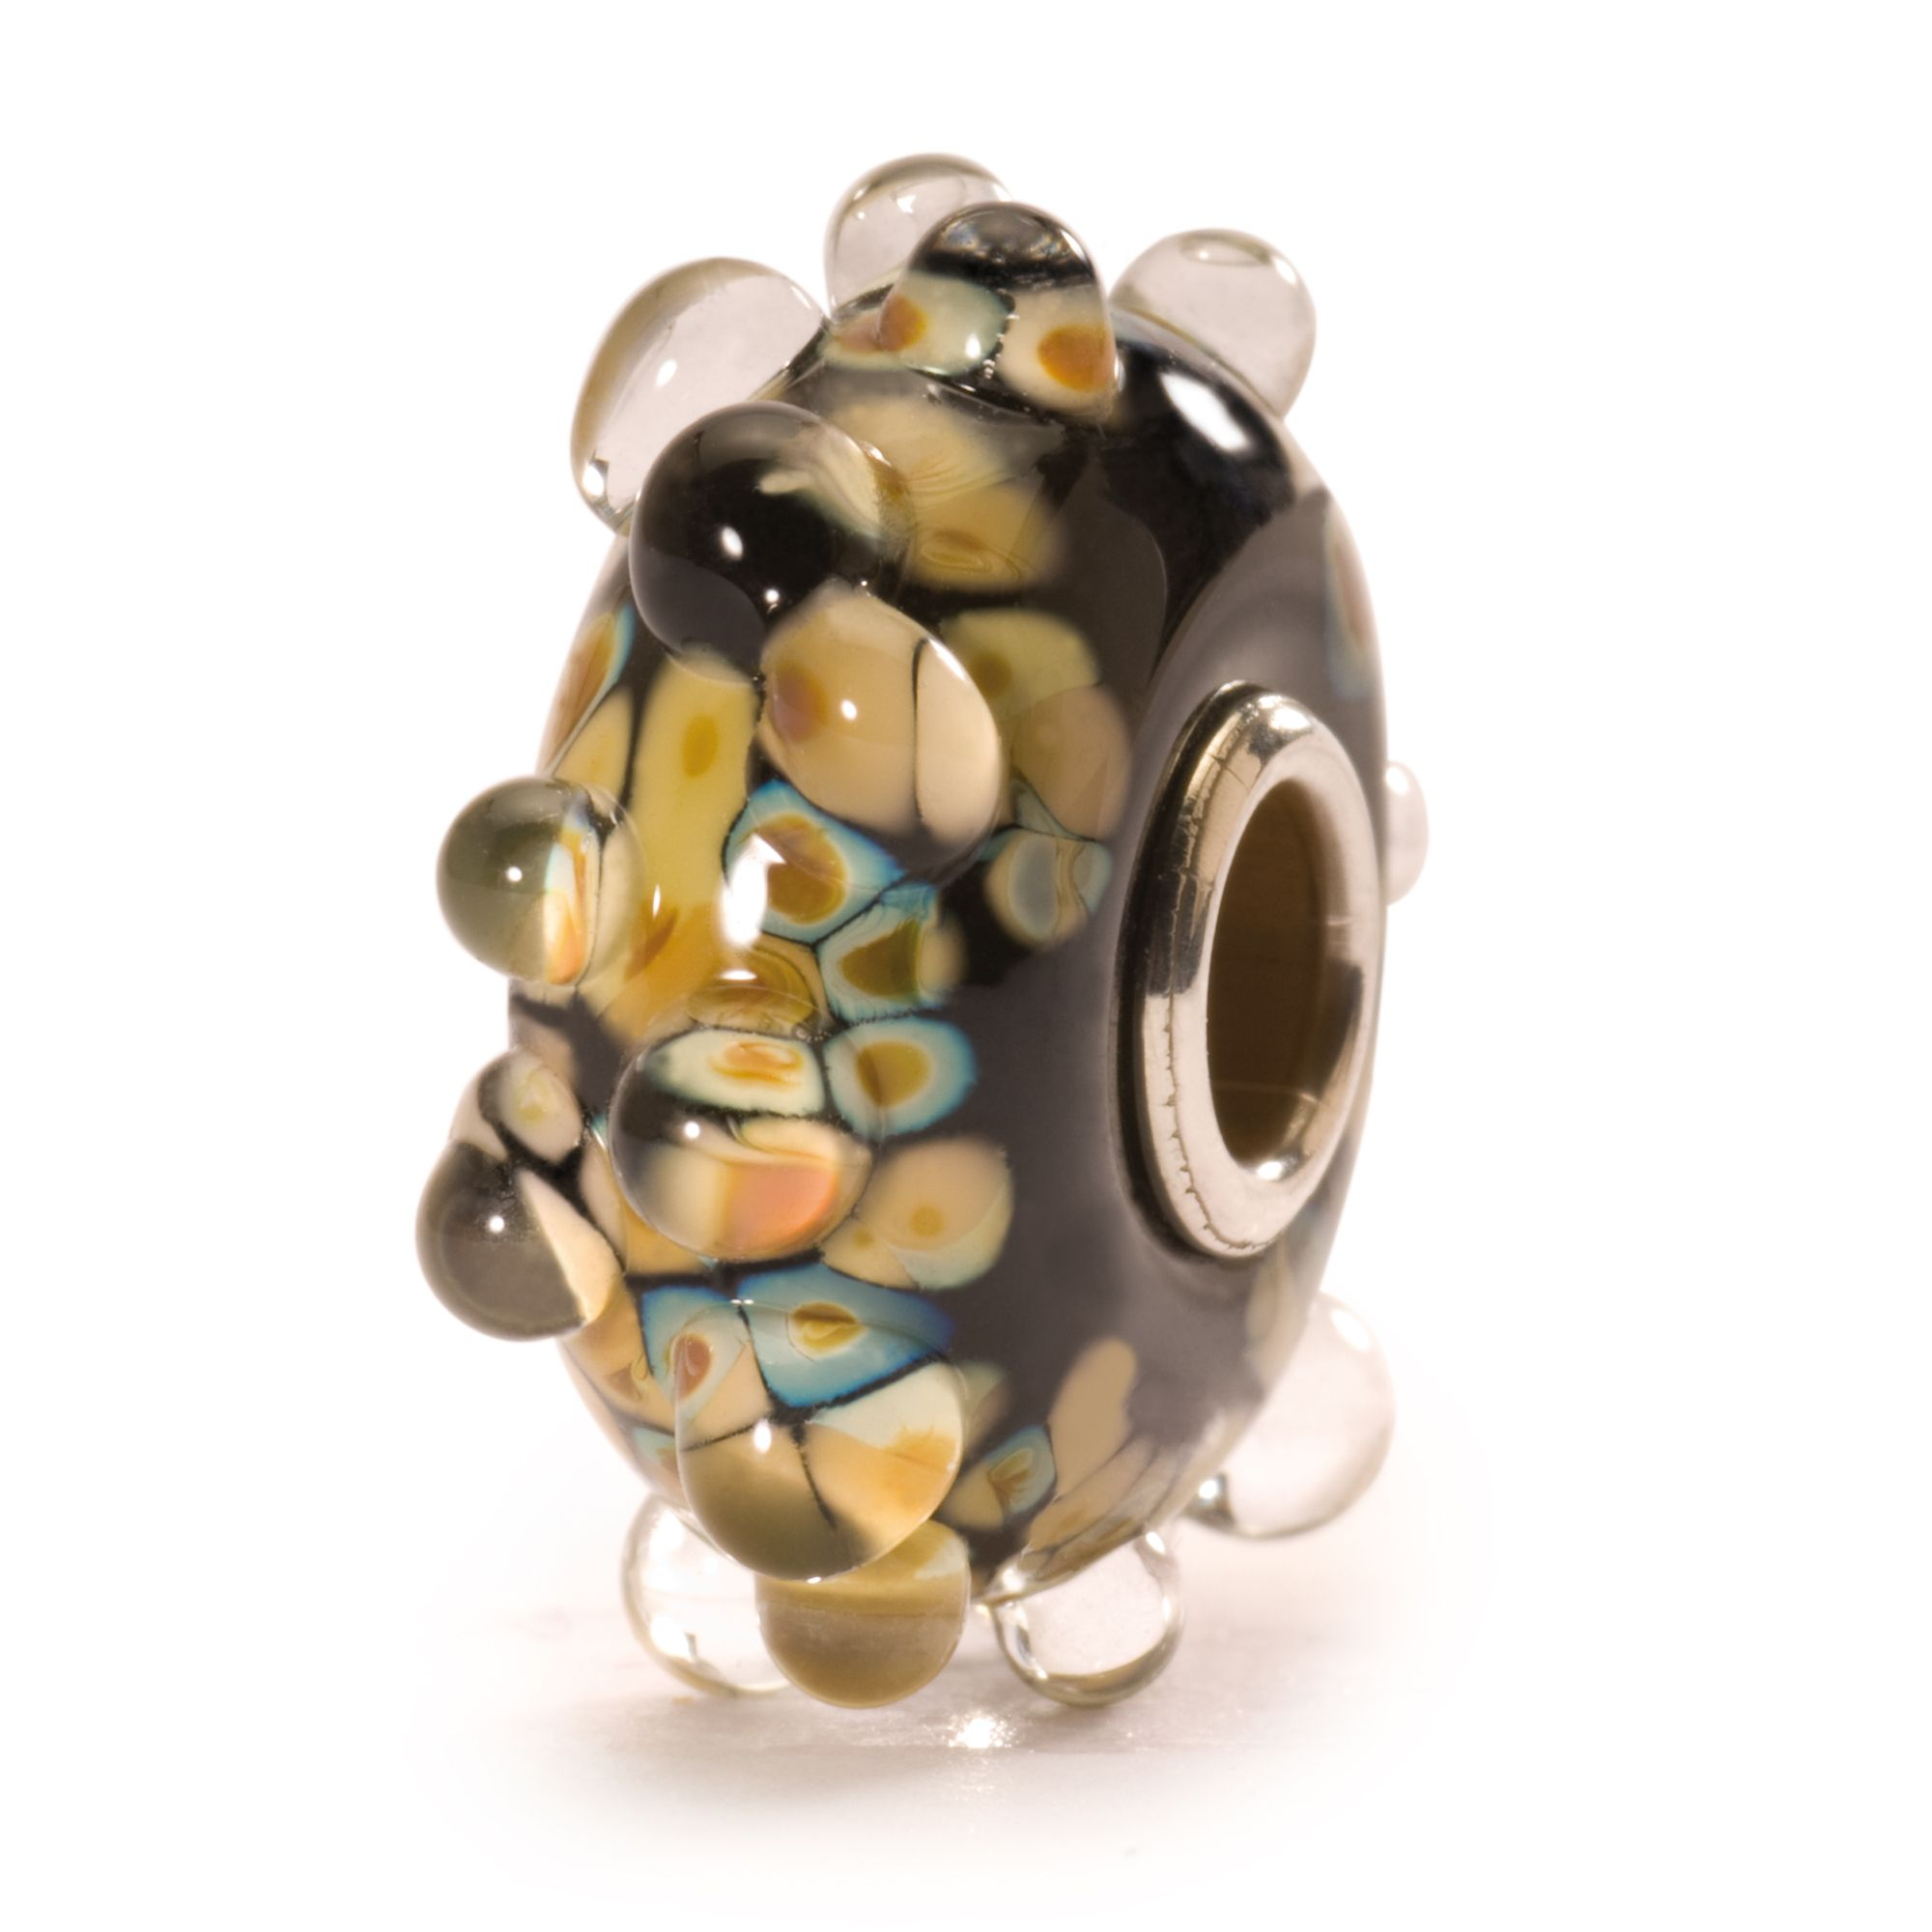 Milan glass charm bead